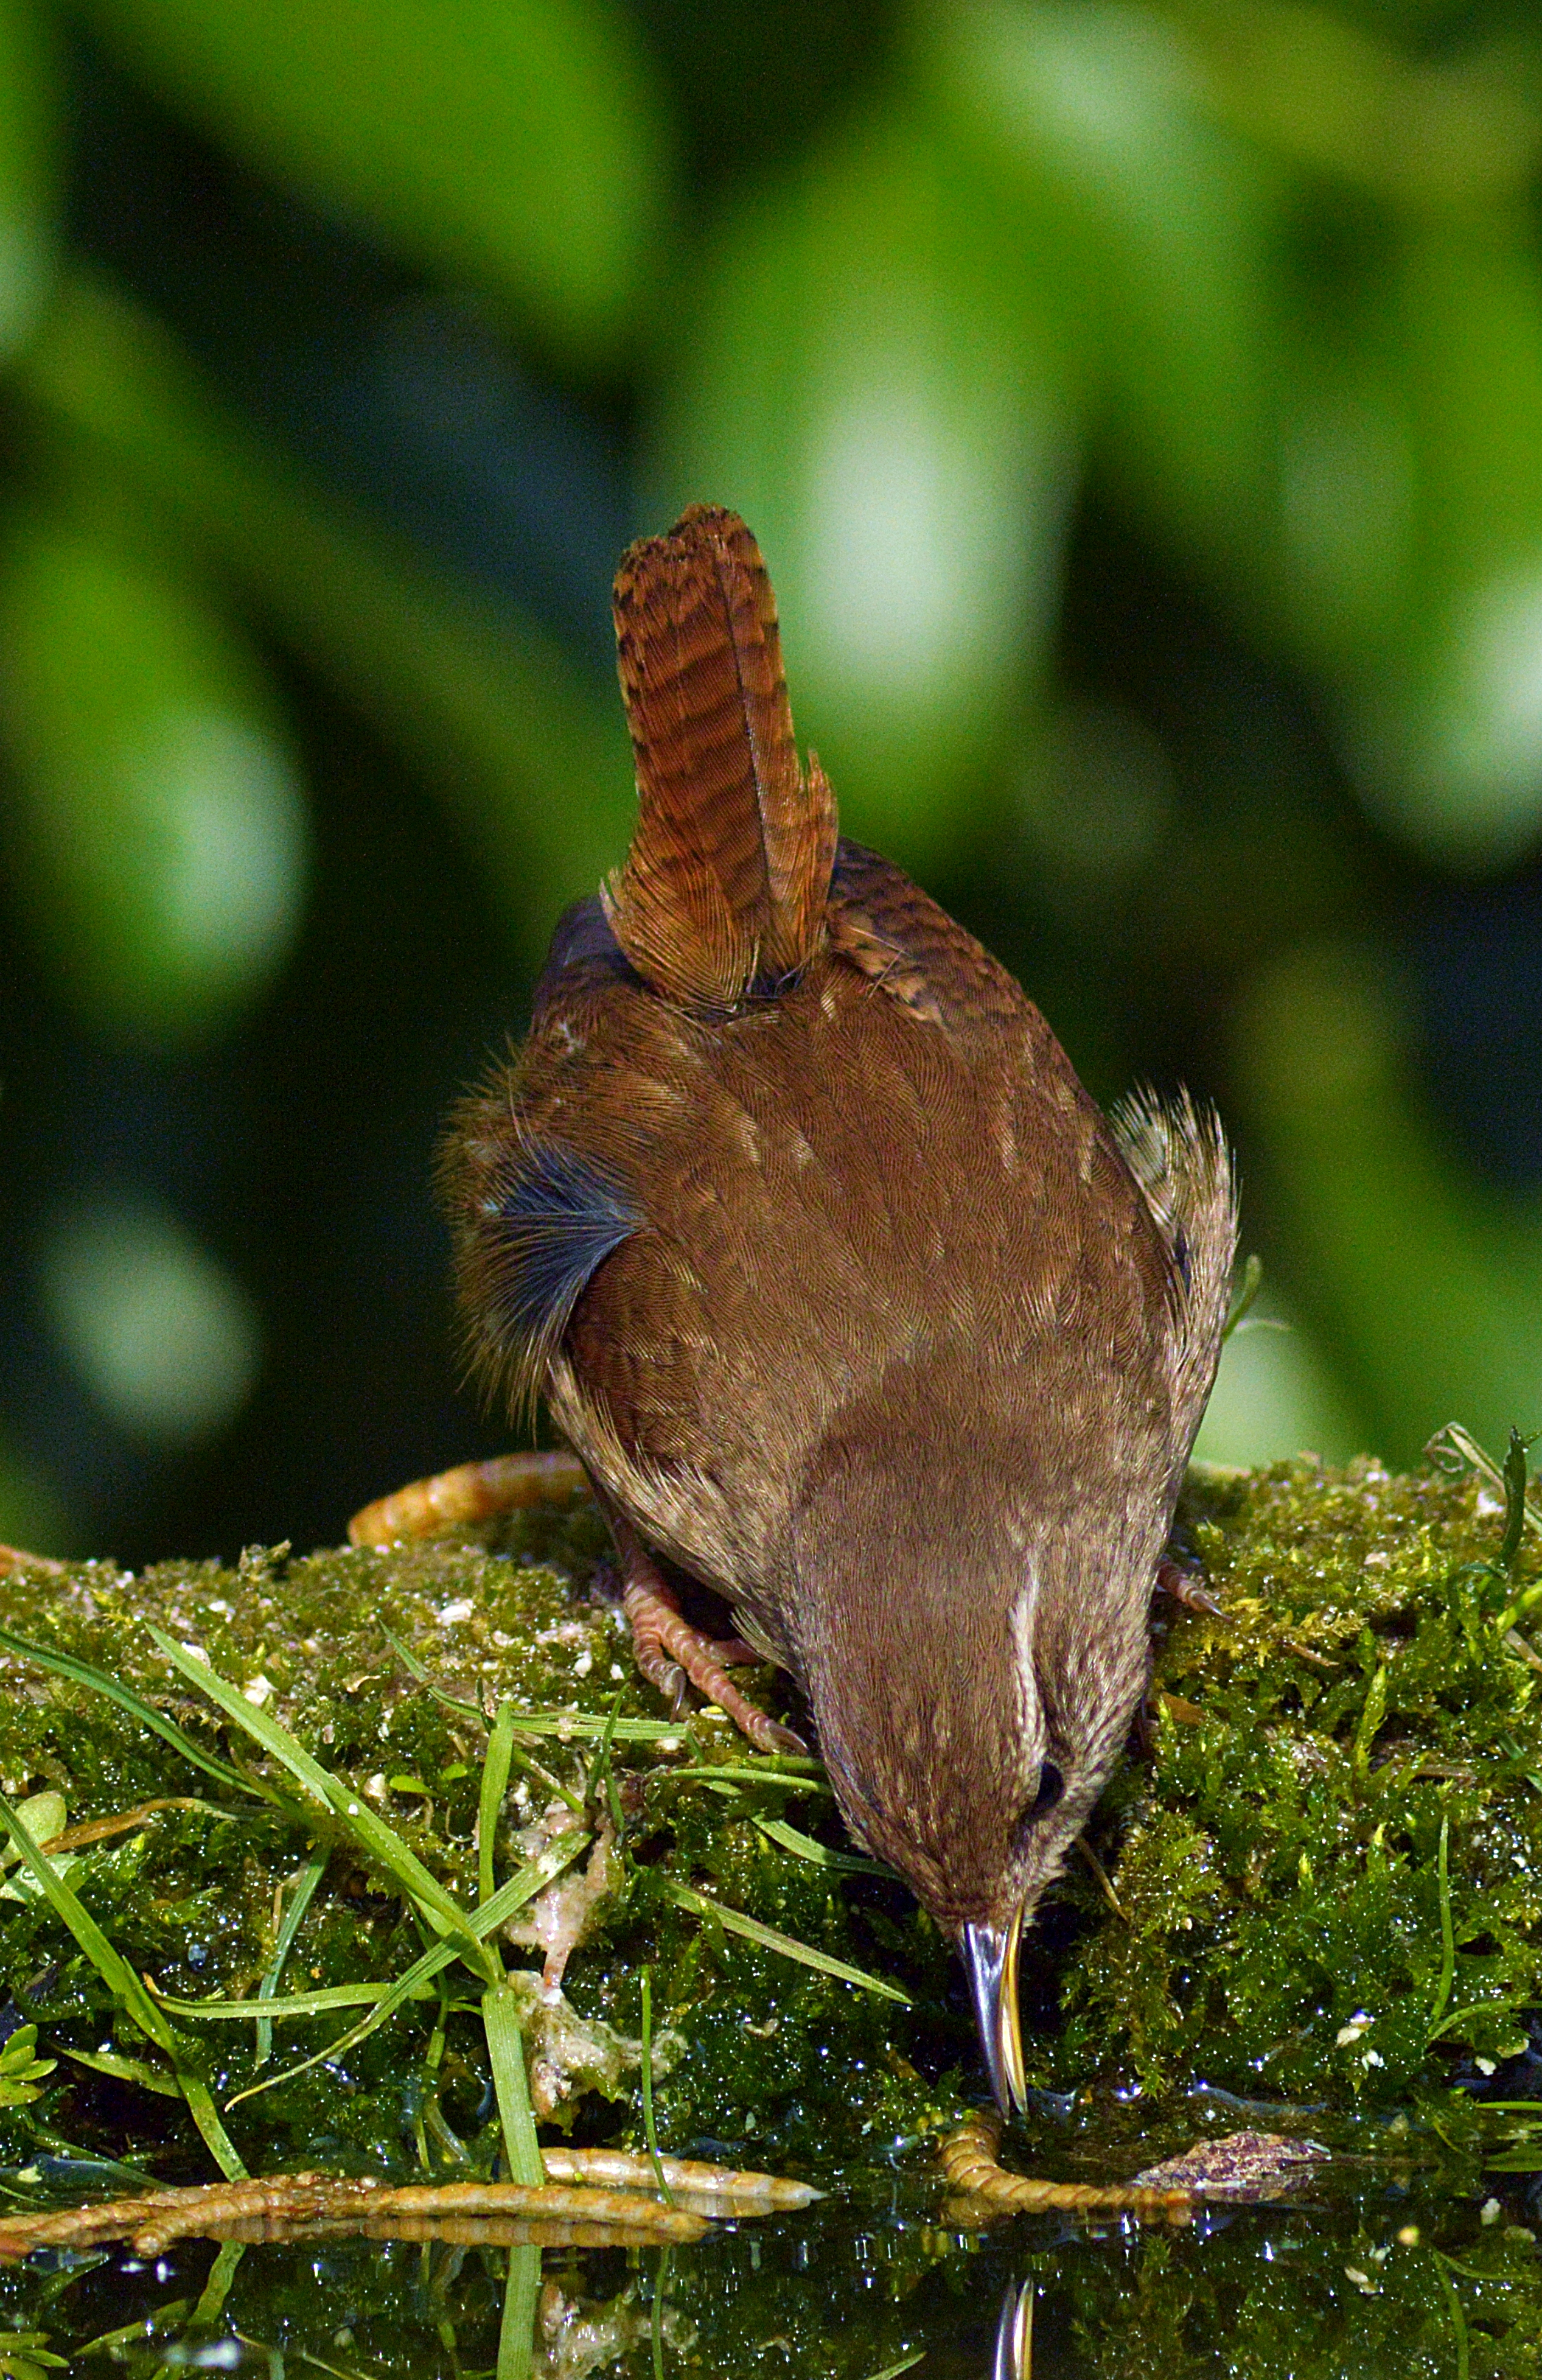 wren taking a mealworm